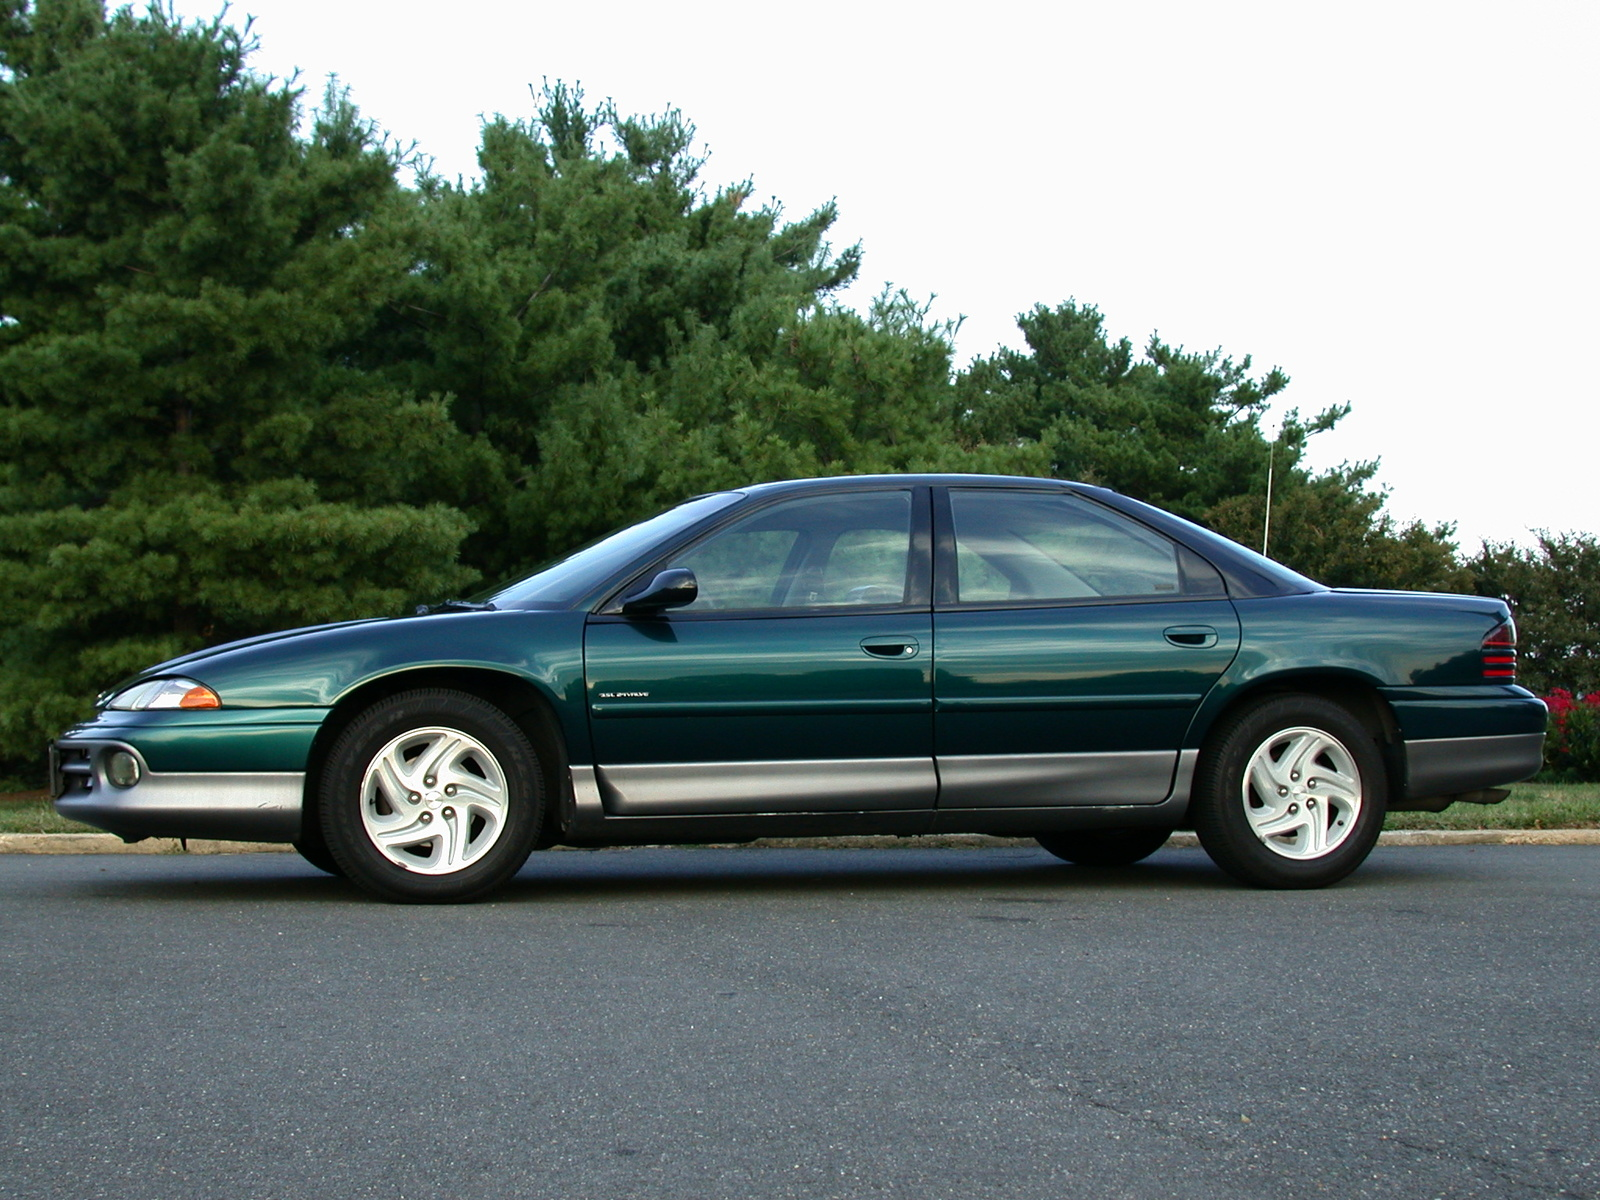 1994 Dodge Intrepid #4